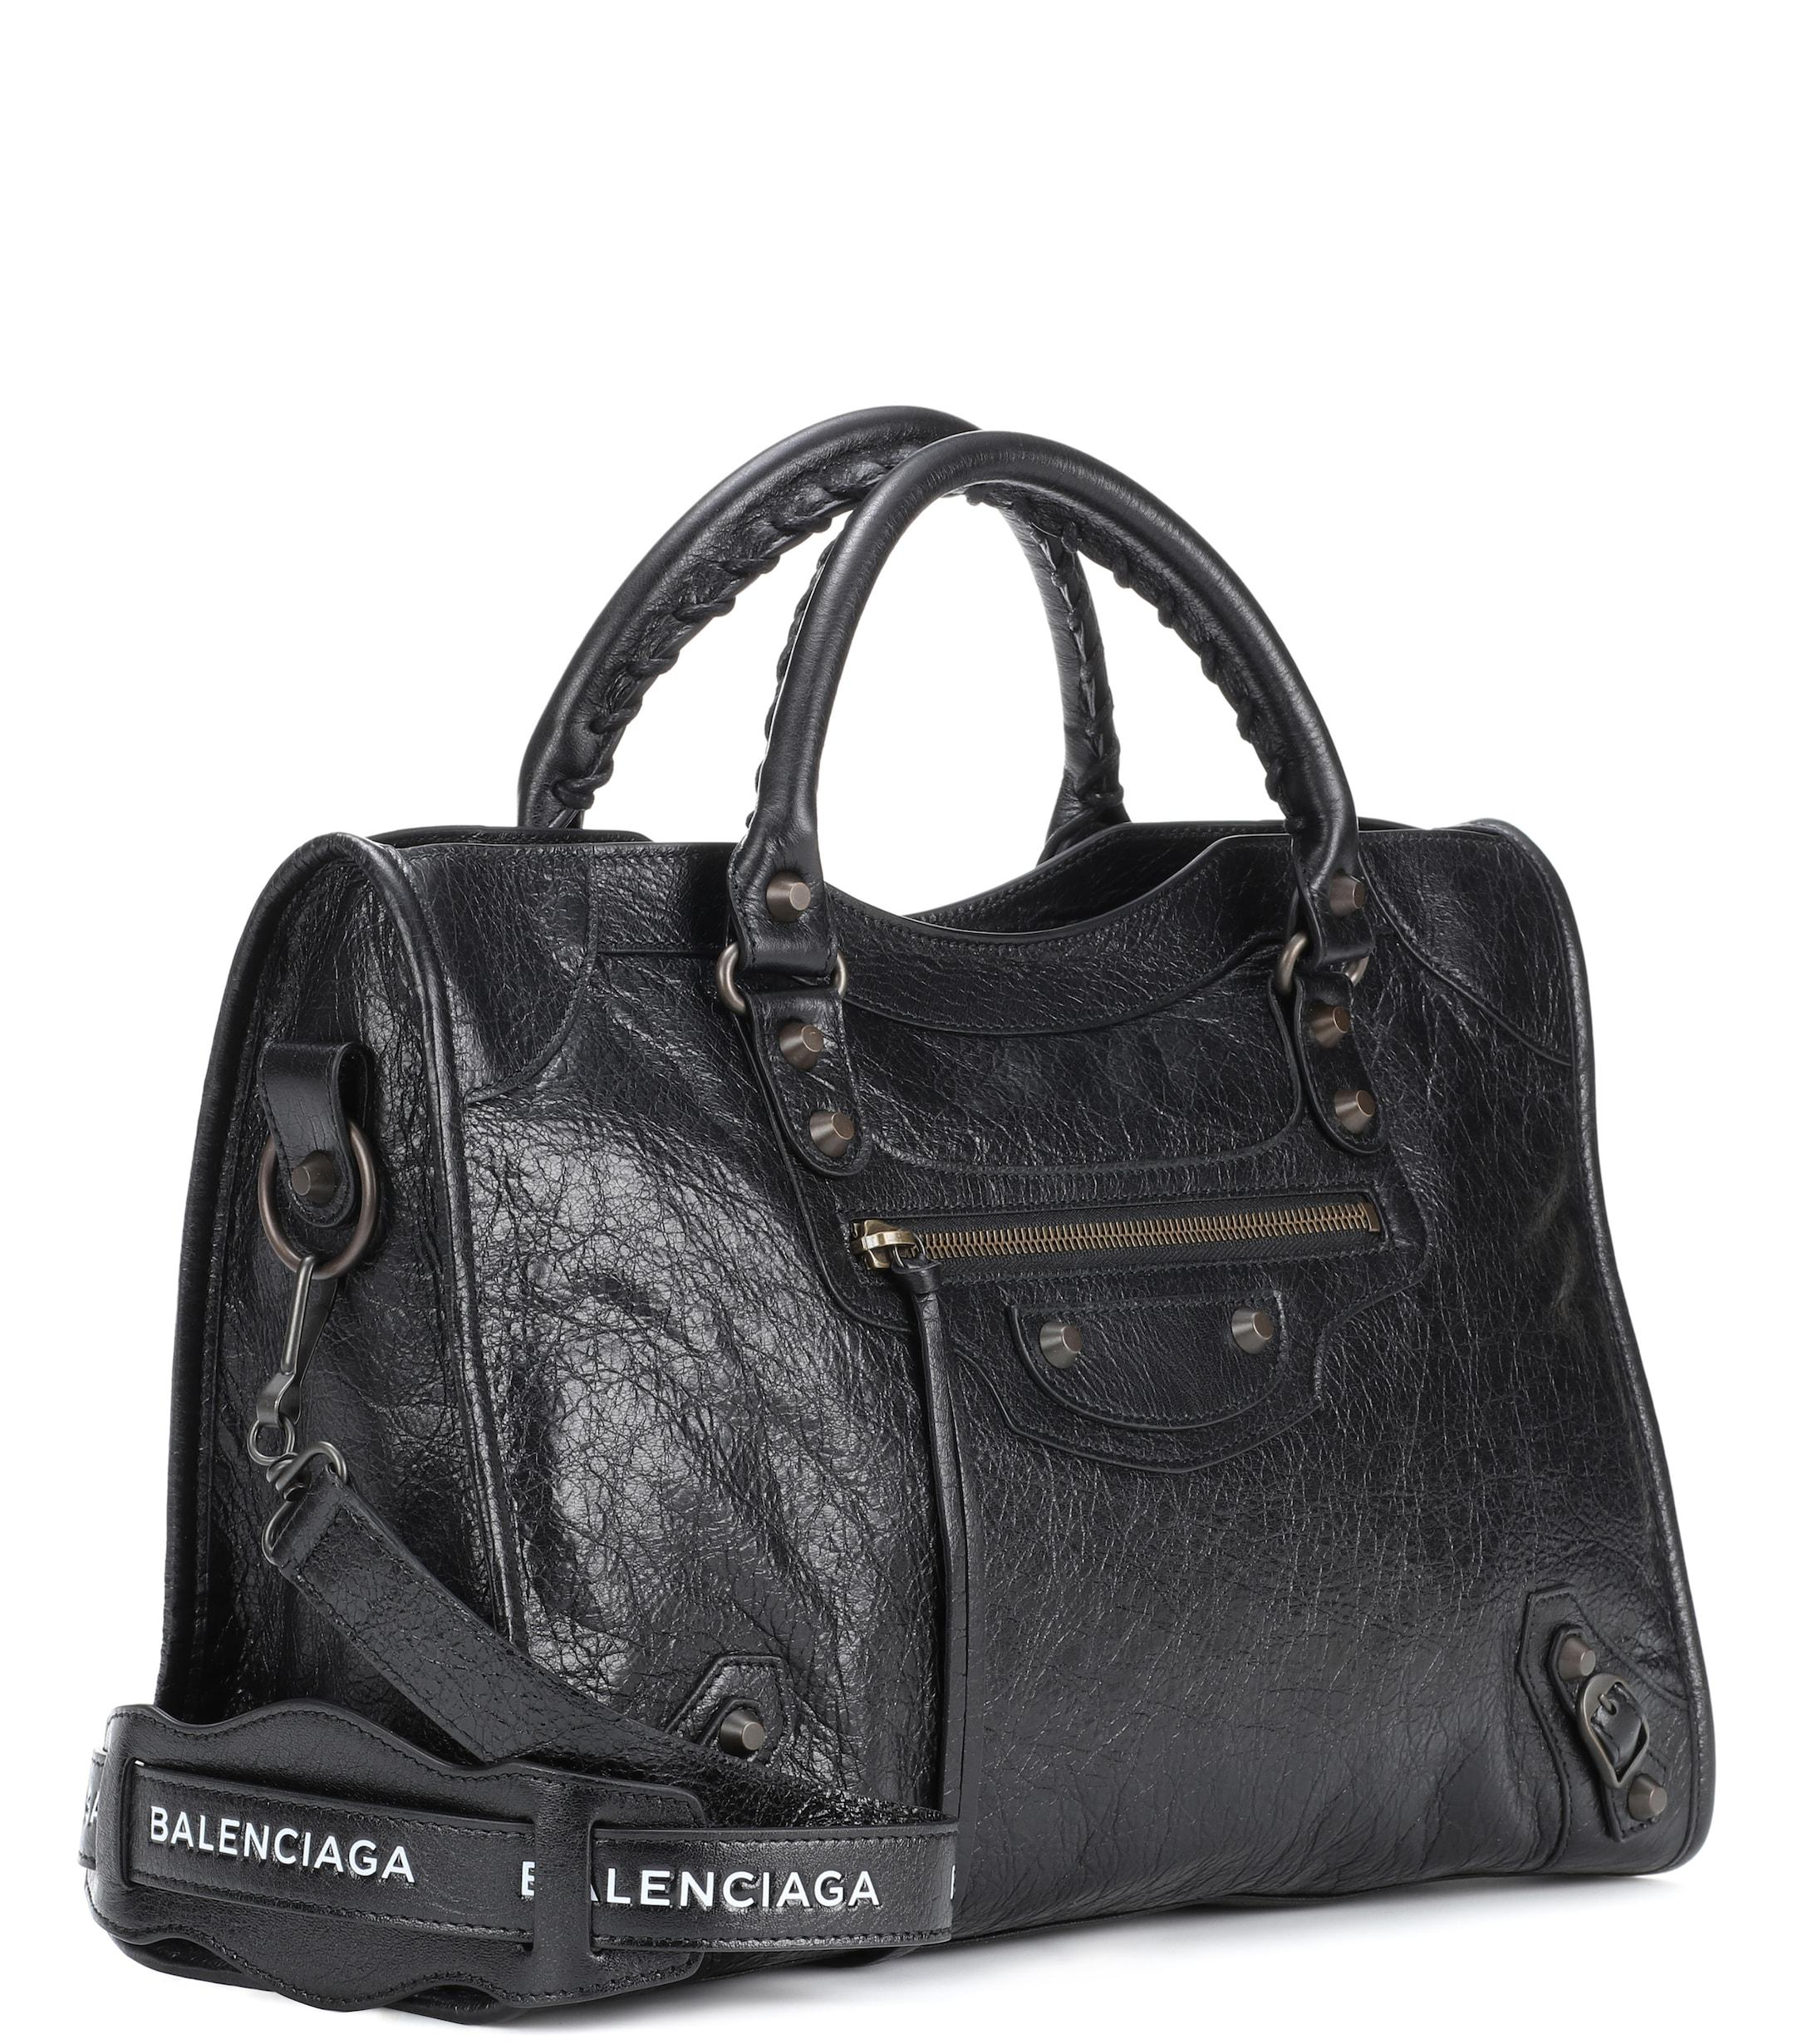 9665037522 Balenciaga - Black Classic City Medium Leather Shoulder Bag - Lyst. View  fullscreen